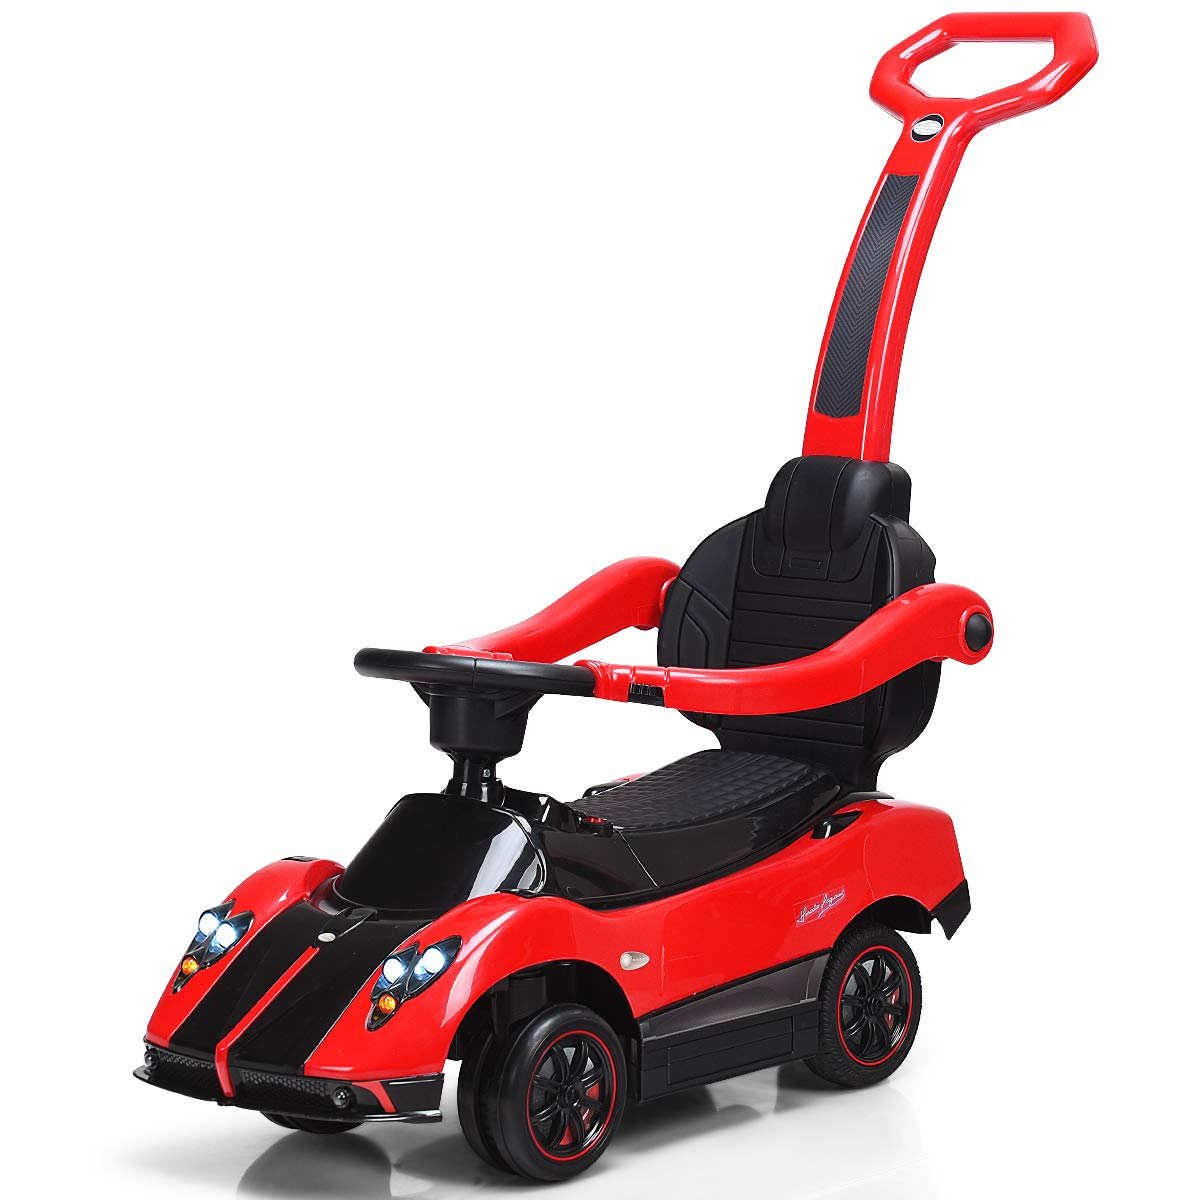 Top 15 Best Riding Toys for 1 Year Olds Reviews in 2020 10